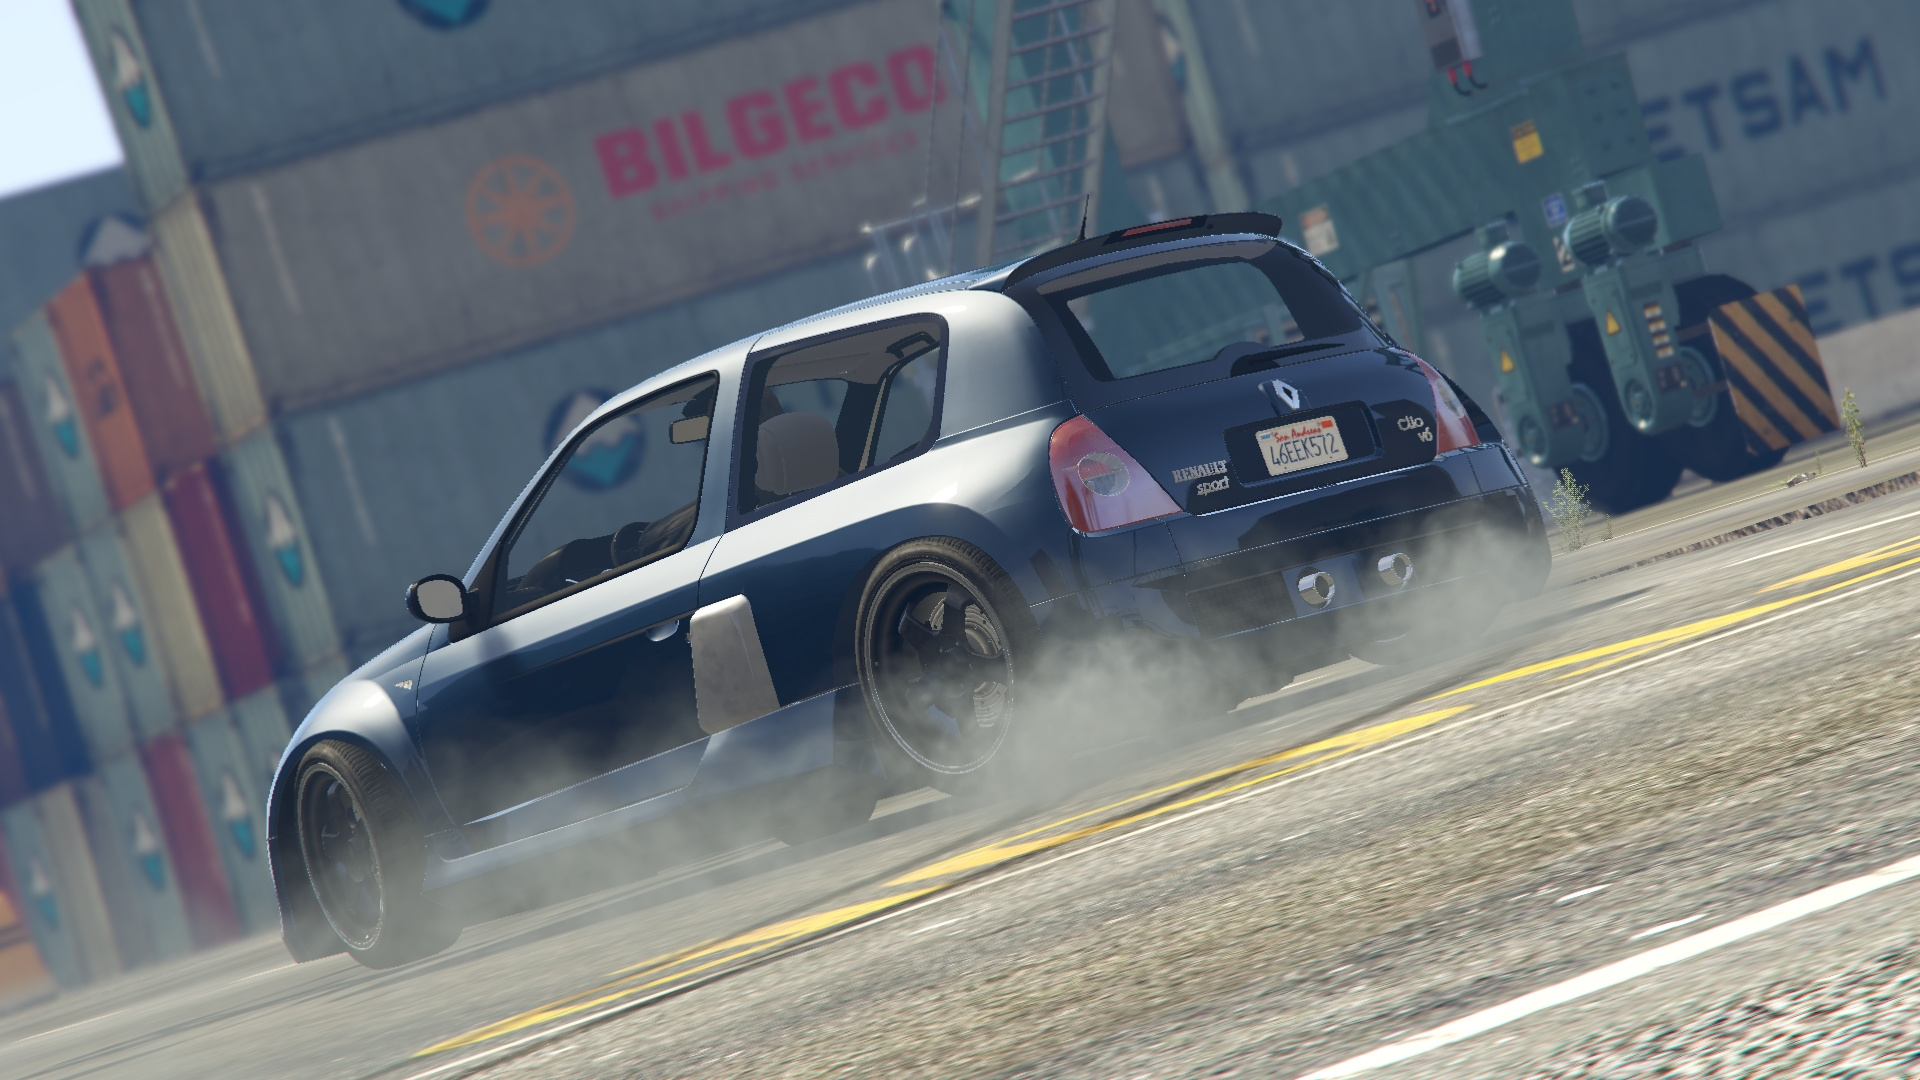 2003 Renault Clio V6 (Phase 2) [Add-On Tuning] - GTA5-Mods.com